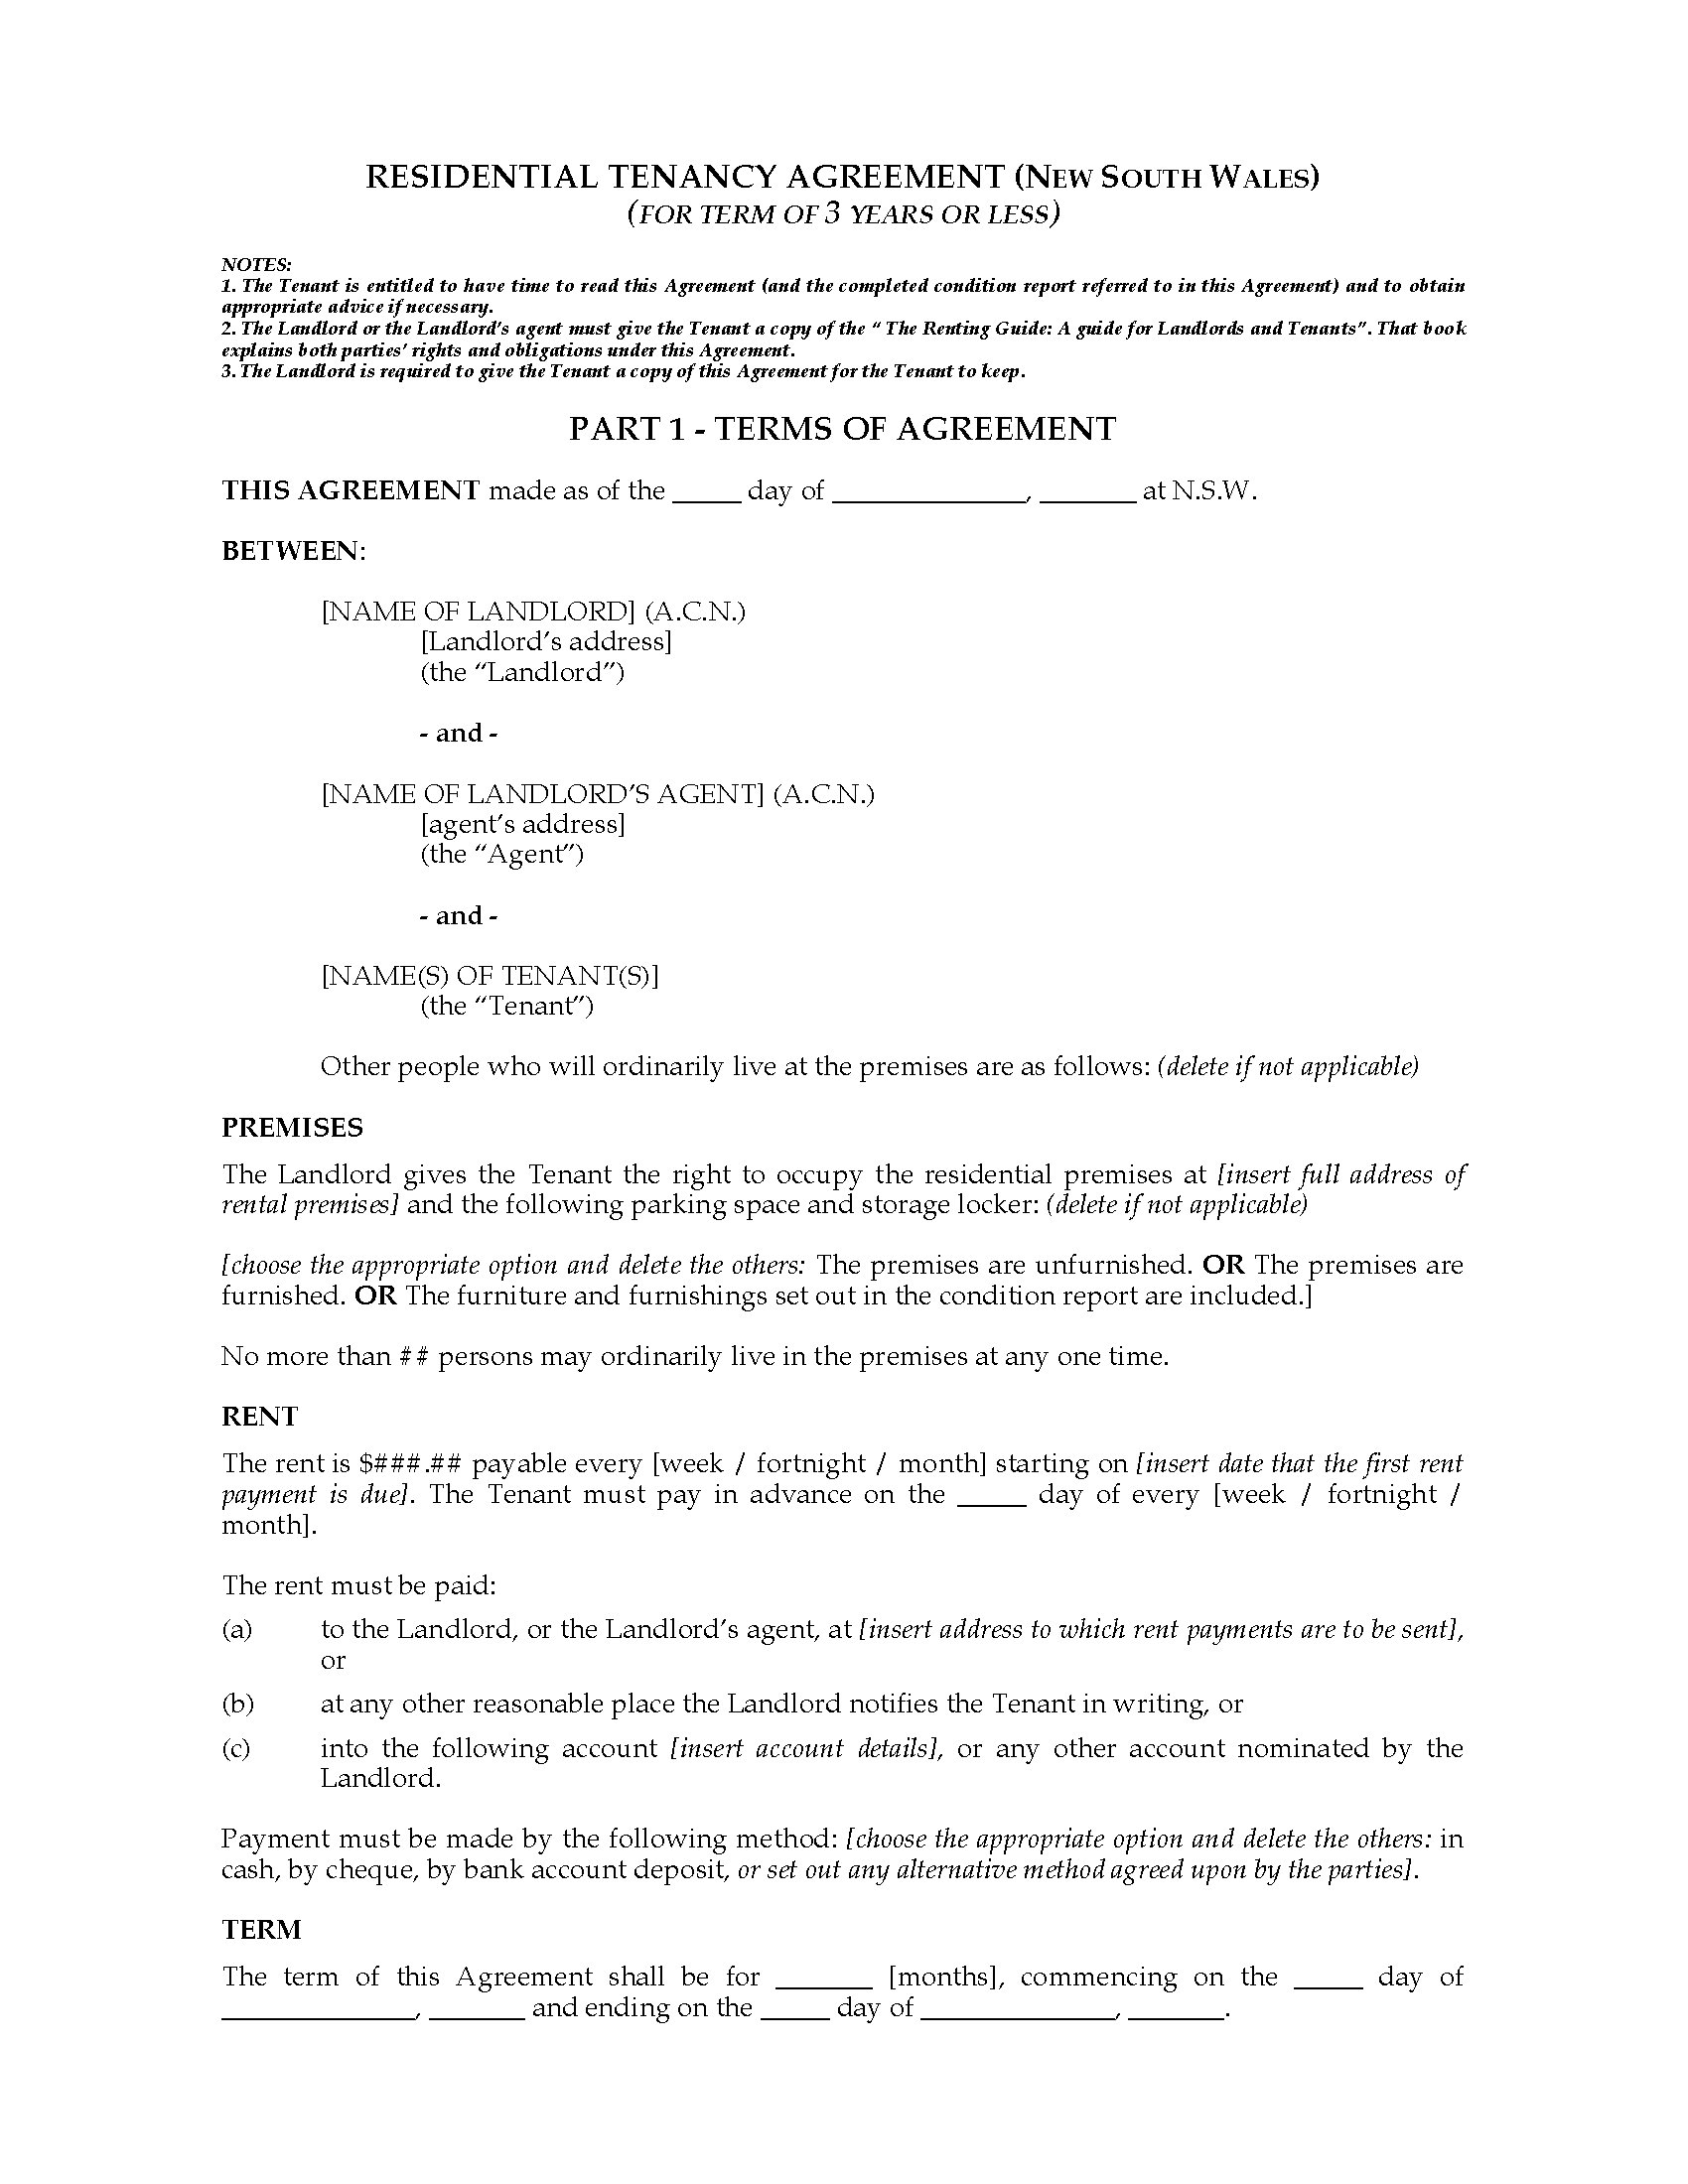 Nsw Residential Tenancy Agreement 3 Years Or Less Legal Forms